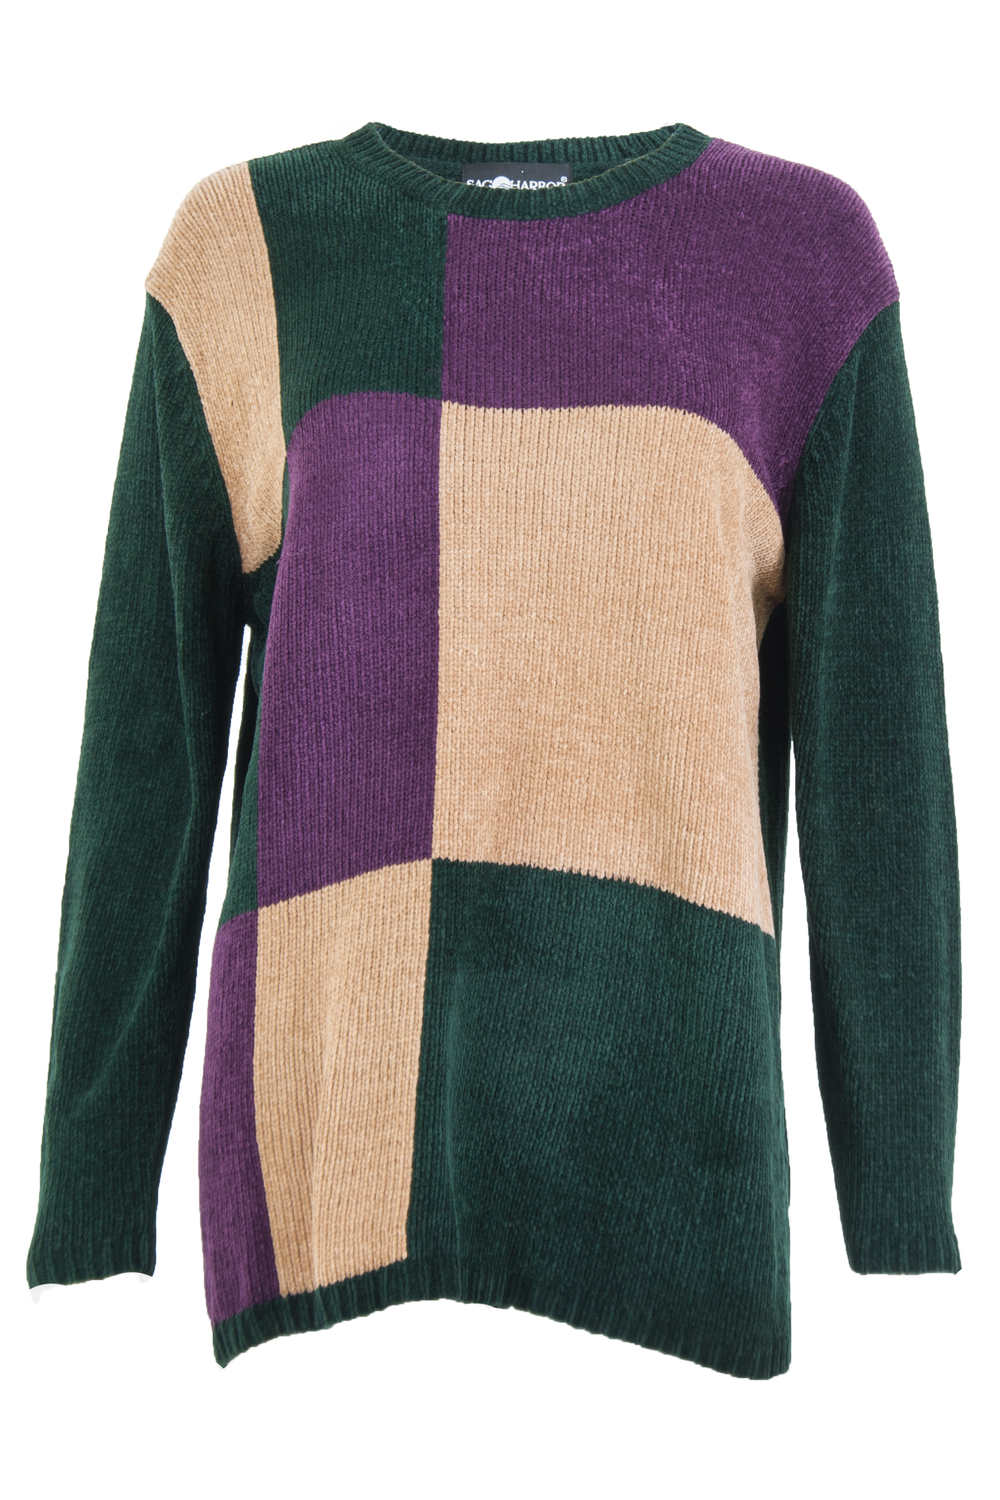 Vintage velour sweater with camel, green, and purple colorblock grid.